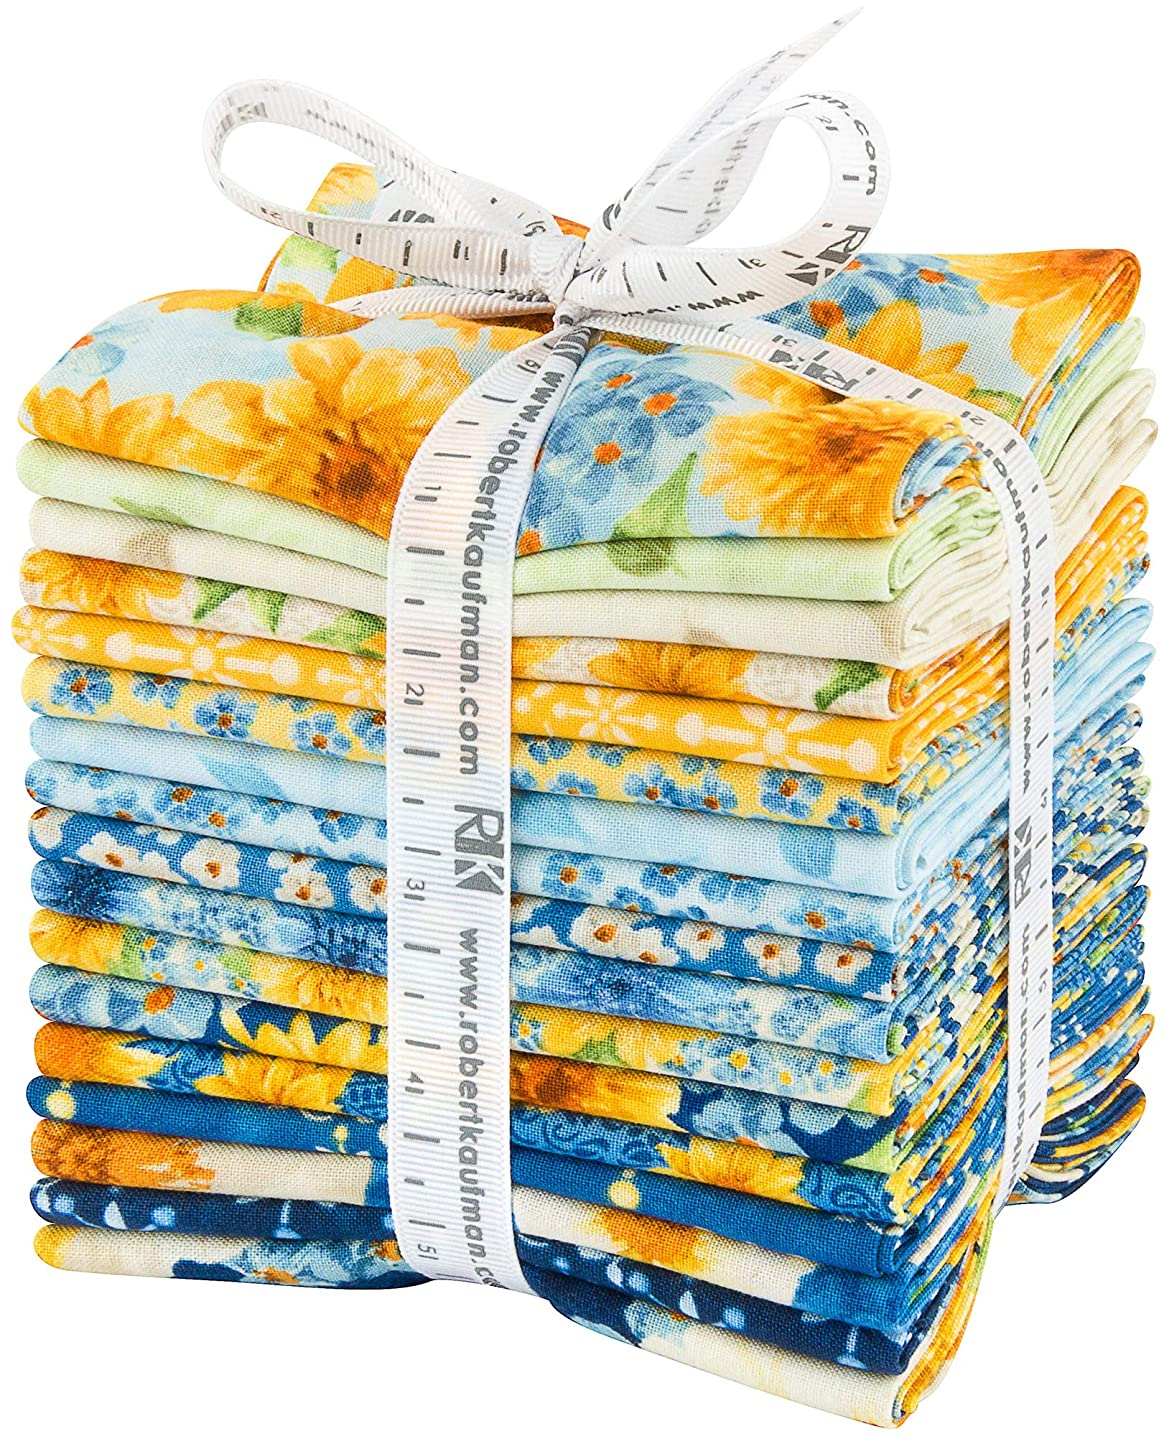 Rebecca BAER Gardenside Path Fat Quarter Bundle 17 Precut Cotton Fabric Quilting FQs Assortment Robert Kaufman FQ-1411-17